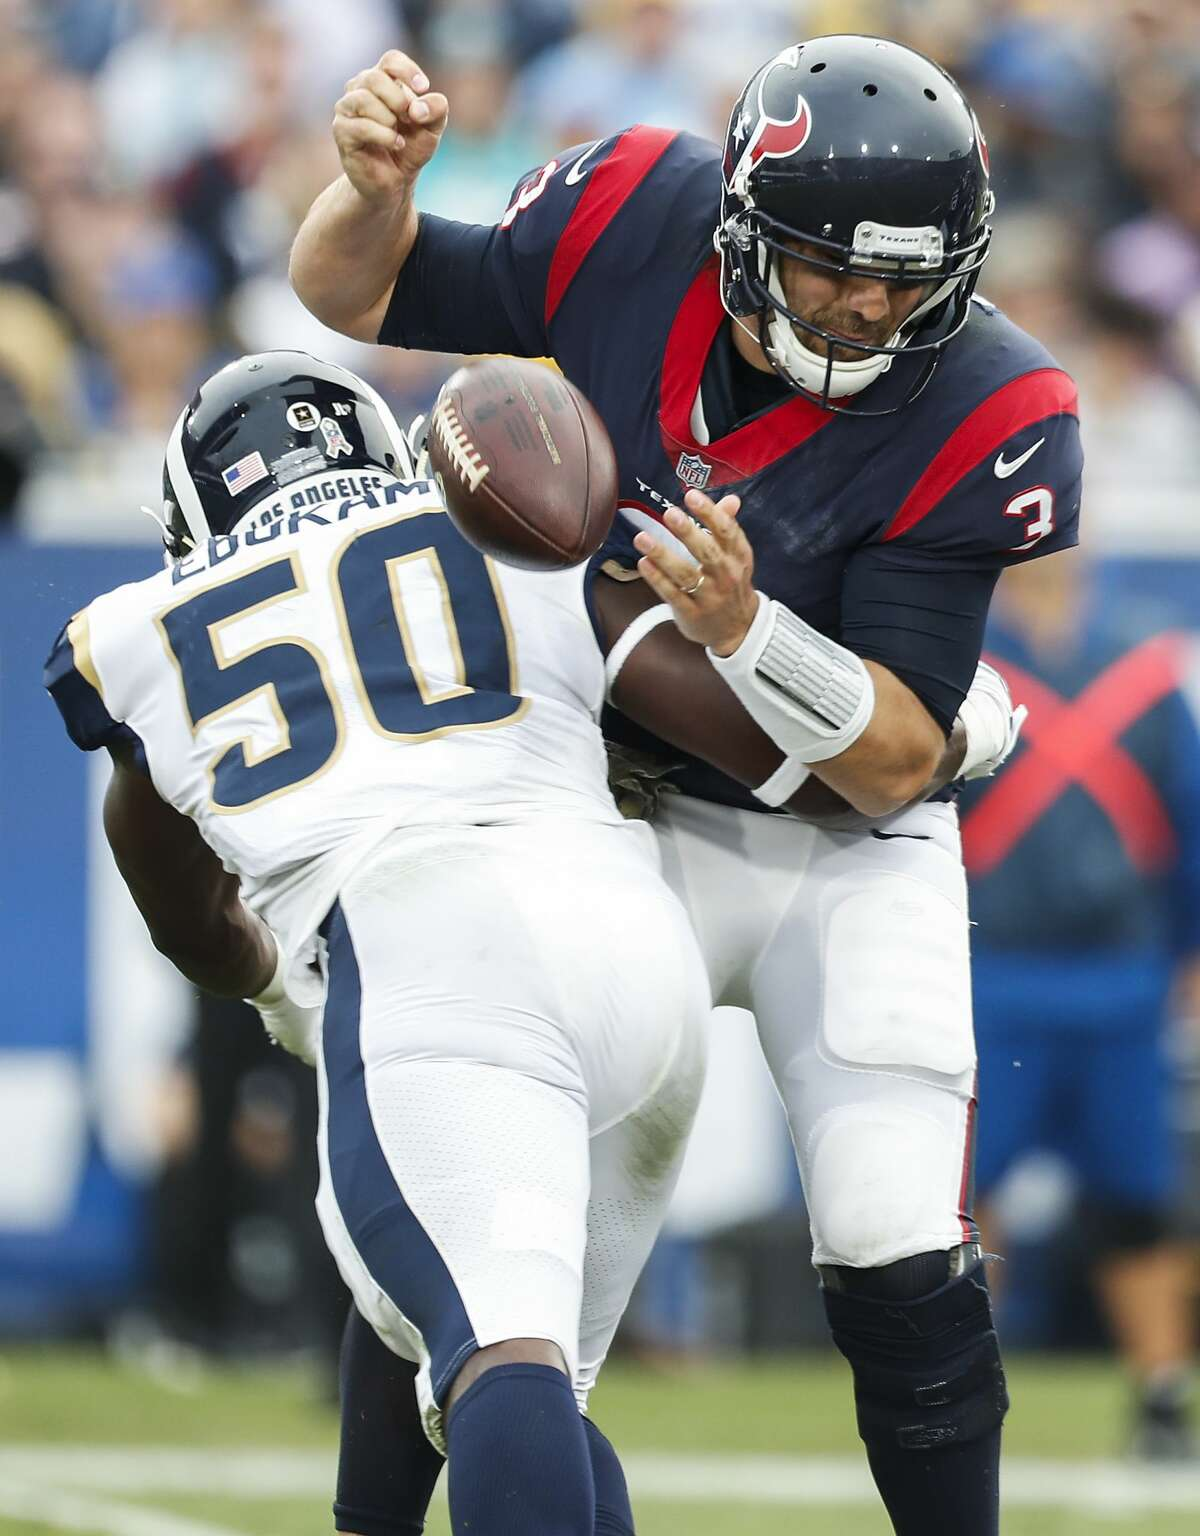 Houston Texans quarterback Tom Savage (3) fumbles as he is hit by Los Angeles Rams linebacker Samson Ebukam (50), resulting in a turnover, during the third quarter of an NFL football game at the Los Angeles Memorial Coliseum on Sunday, Nov. 12, 2017, in Los Angeles. ( Brett Coomer / Houston Chronicle )